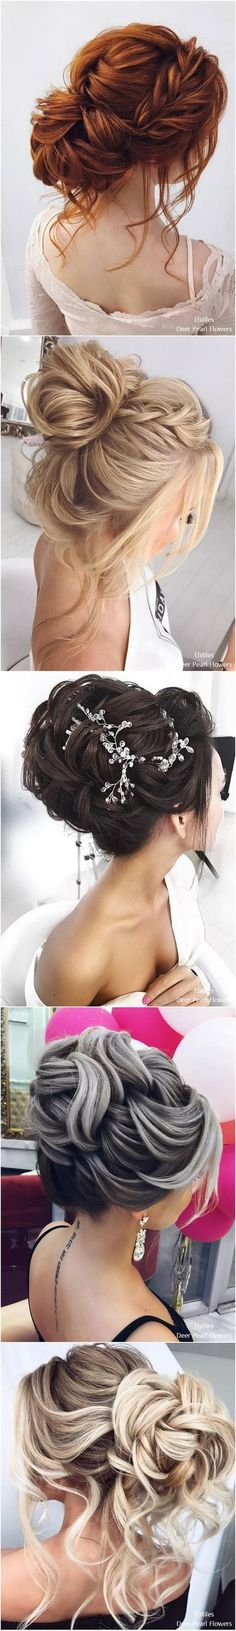 Wedding hairstyle inspiration for long hair up-dos